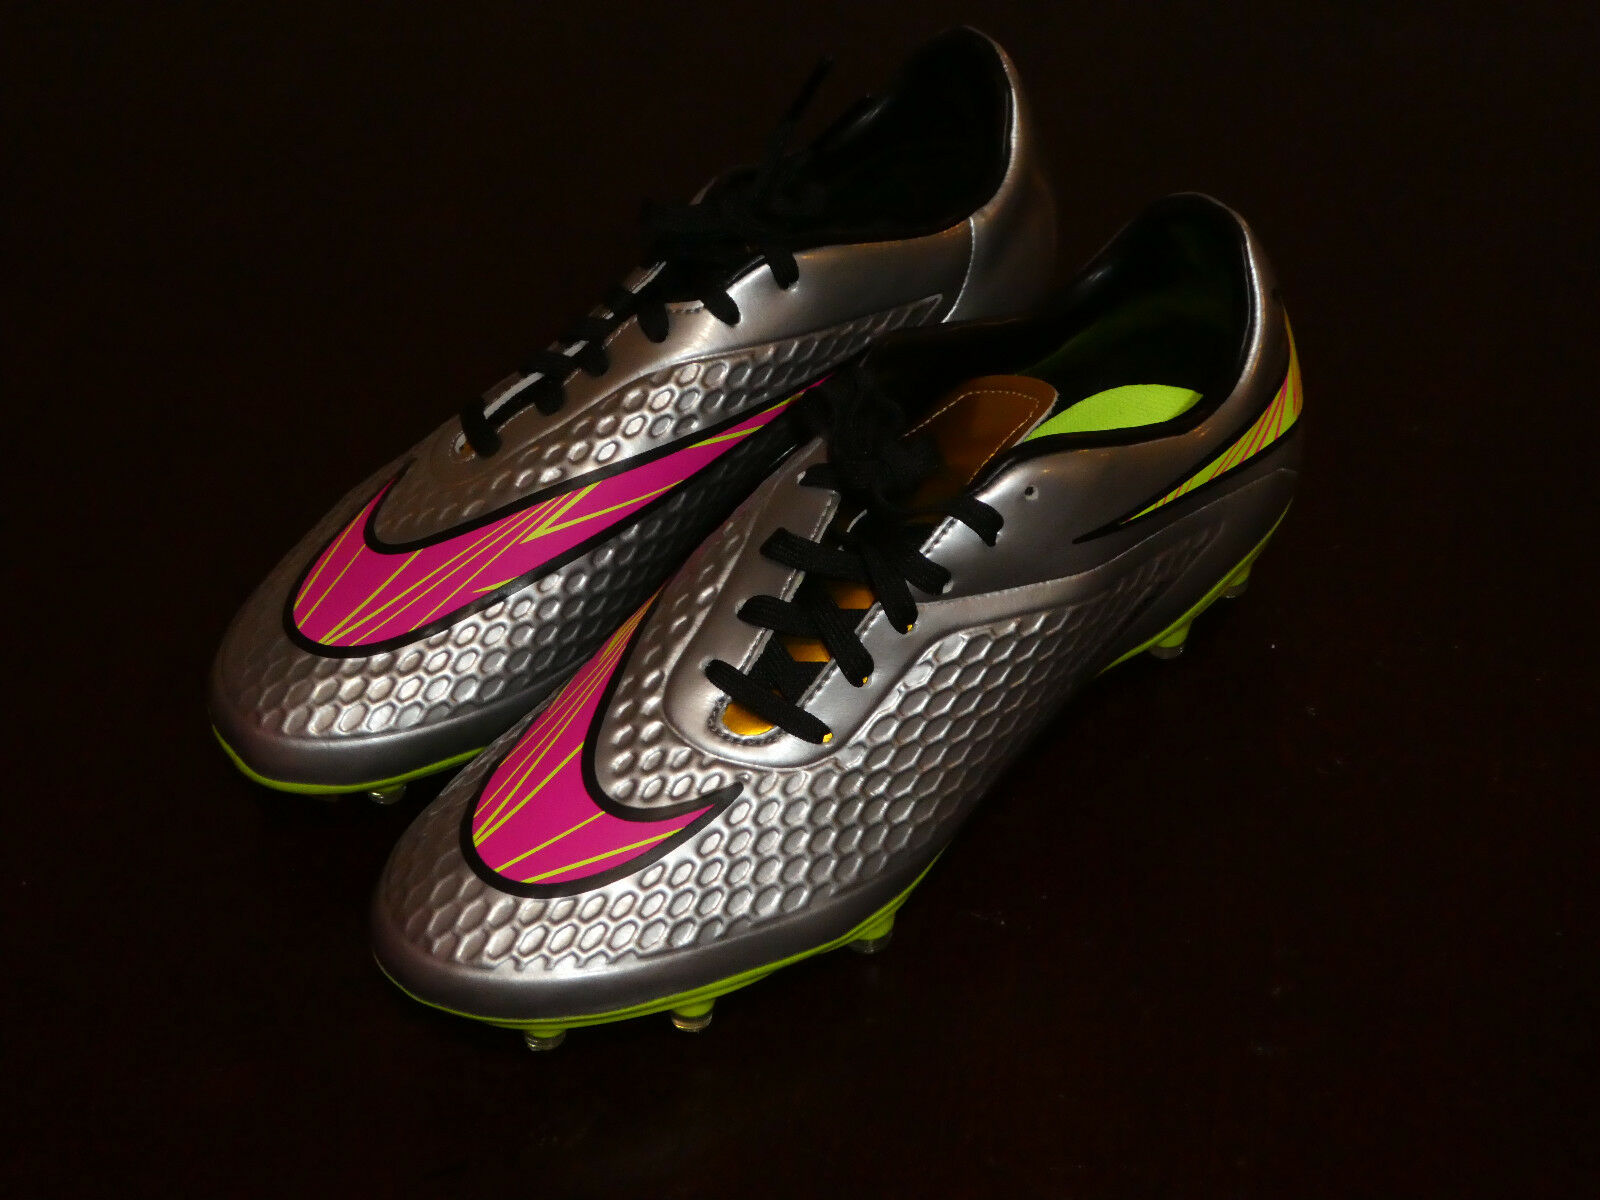 Nike Hypervenom Phelon Prem FG Soccer Cleats new shoes 677585 069